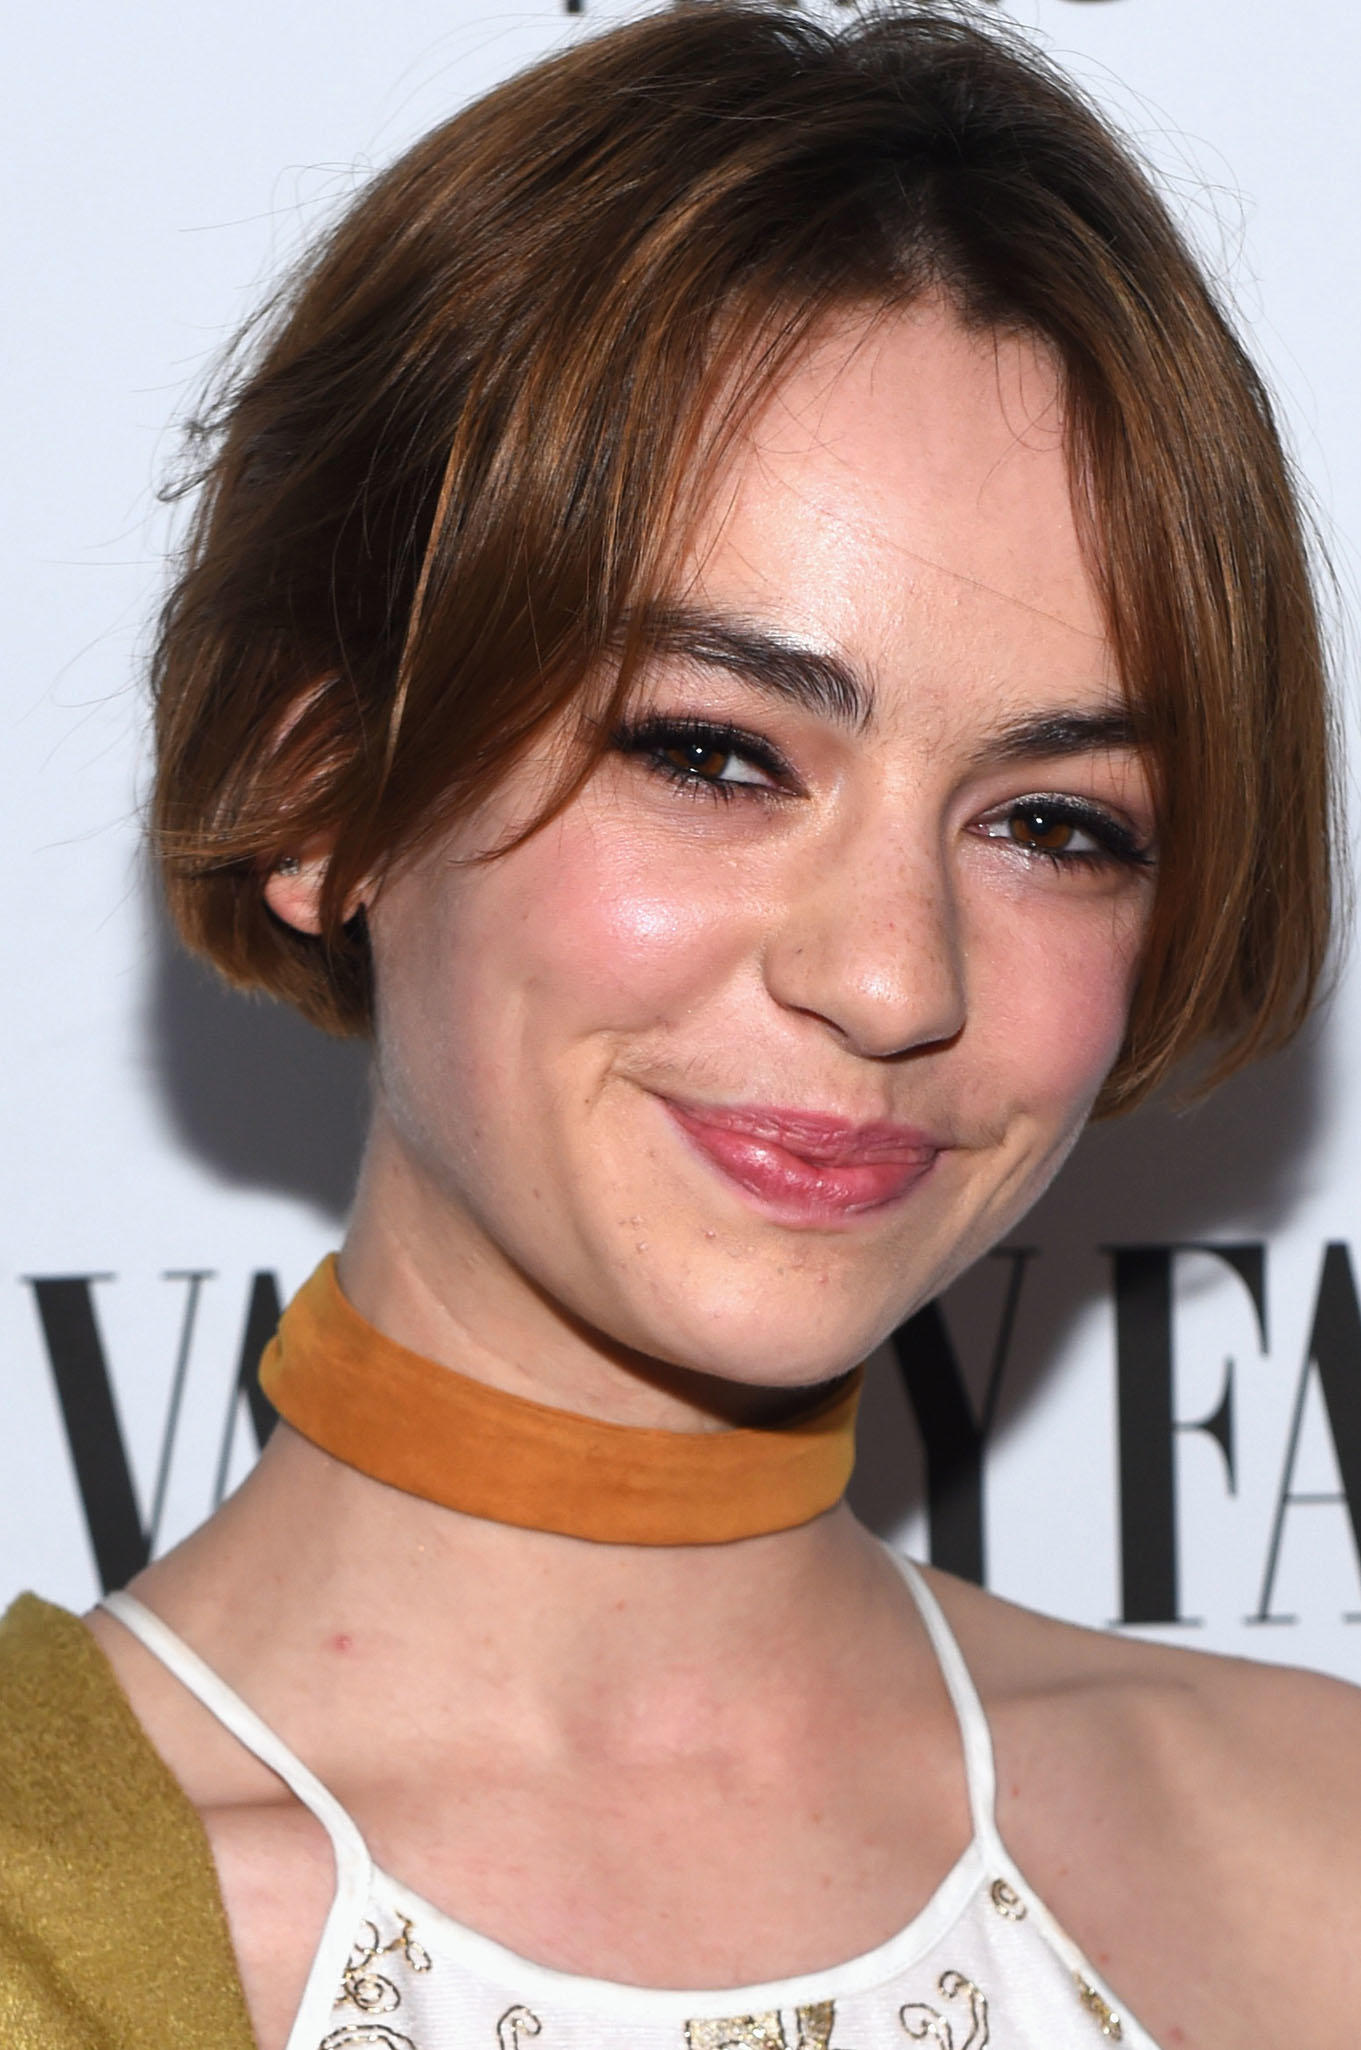 Brigette Lundy-Paine nudes (61 photo) Cleavage, Instagram, see through